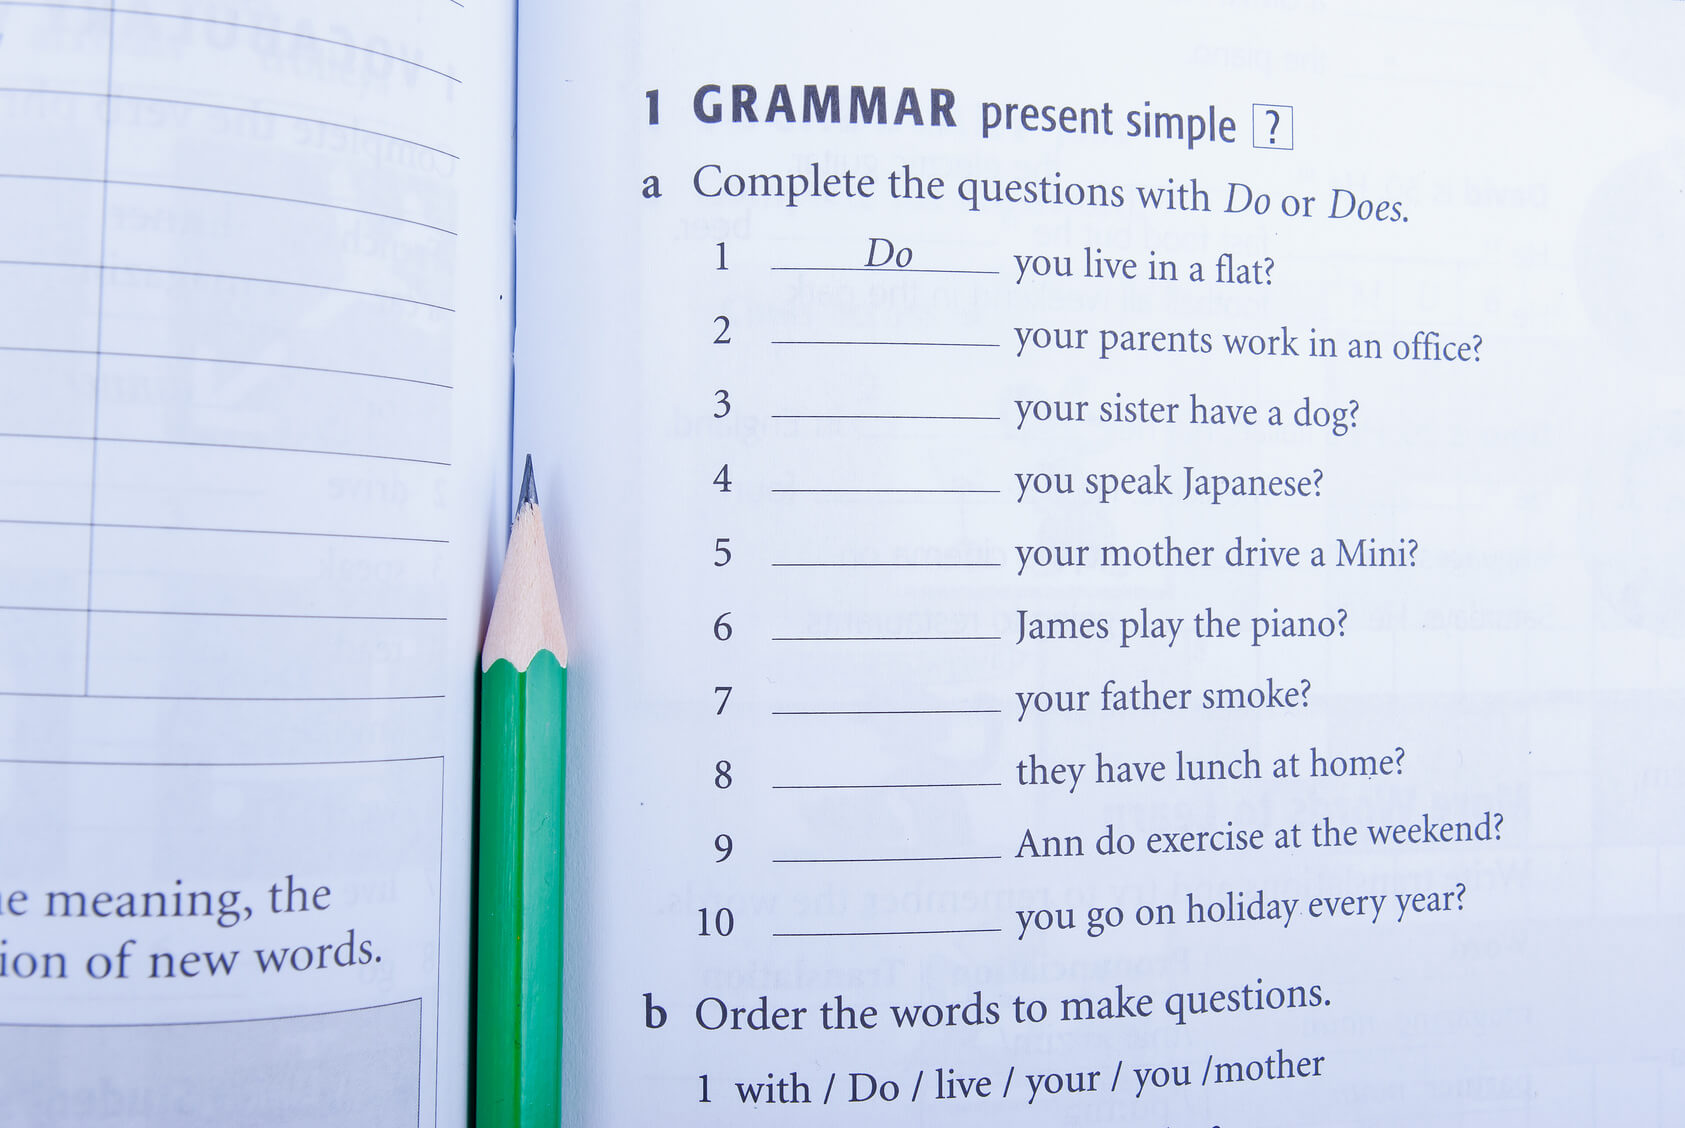 Grammar Excercise - CREATING YOUR OWN MATERIALS FOR THE TEFL CLASSROOM